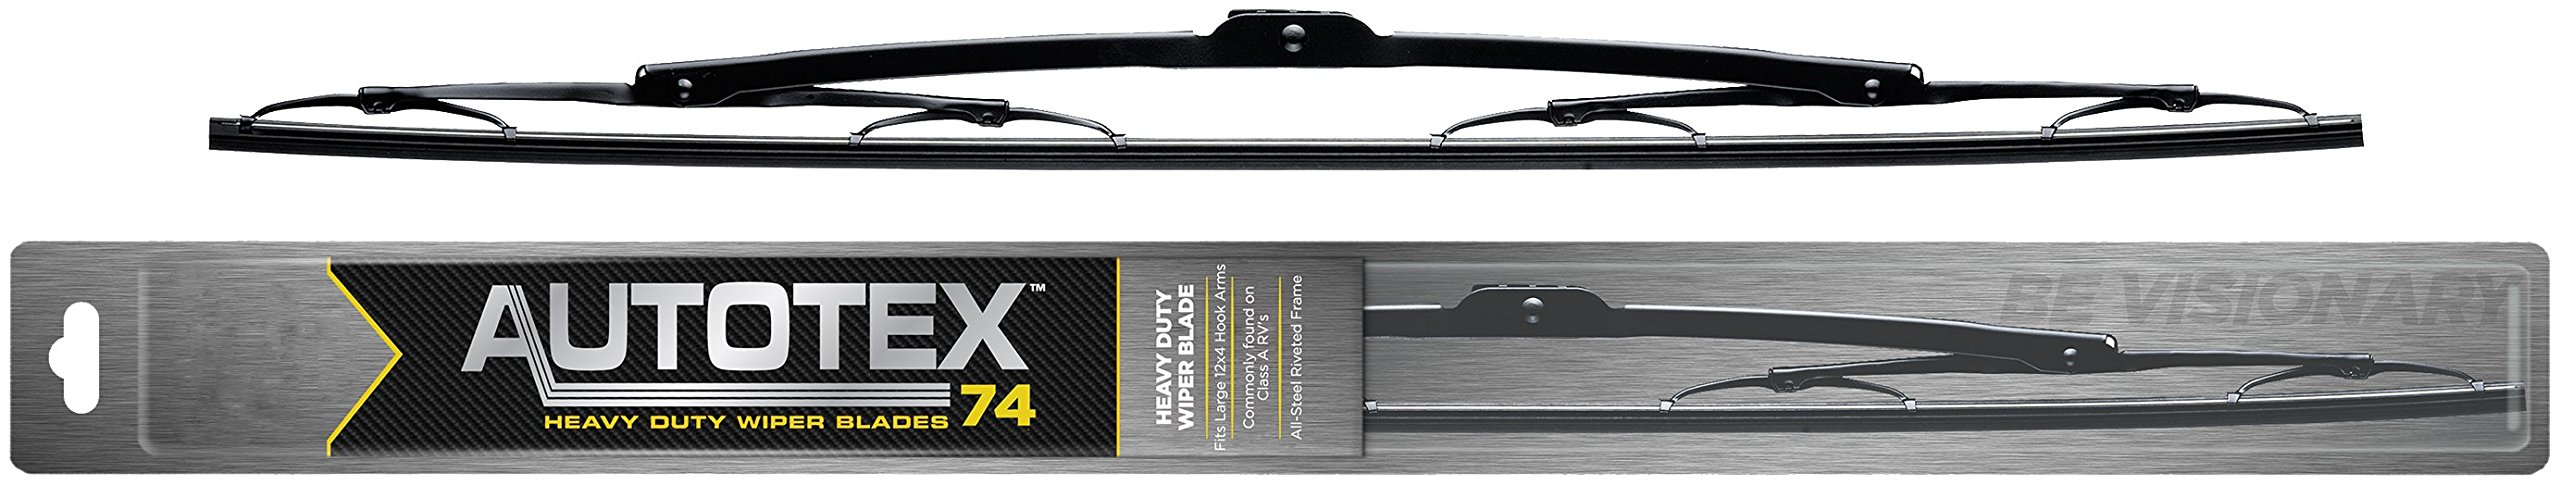 AutoTex Heavy Duty 74-32 74 Series 32'' Wiper Blade OEM Replacement Blades for Trucks, Equipment, Tractors, Boats, Buses. Genuine Automotive Supplies by AutoTex